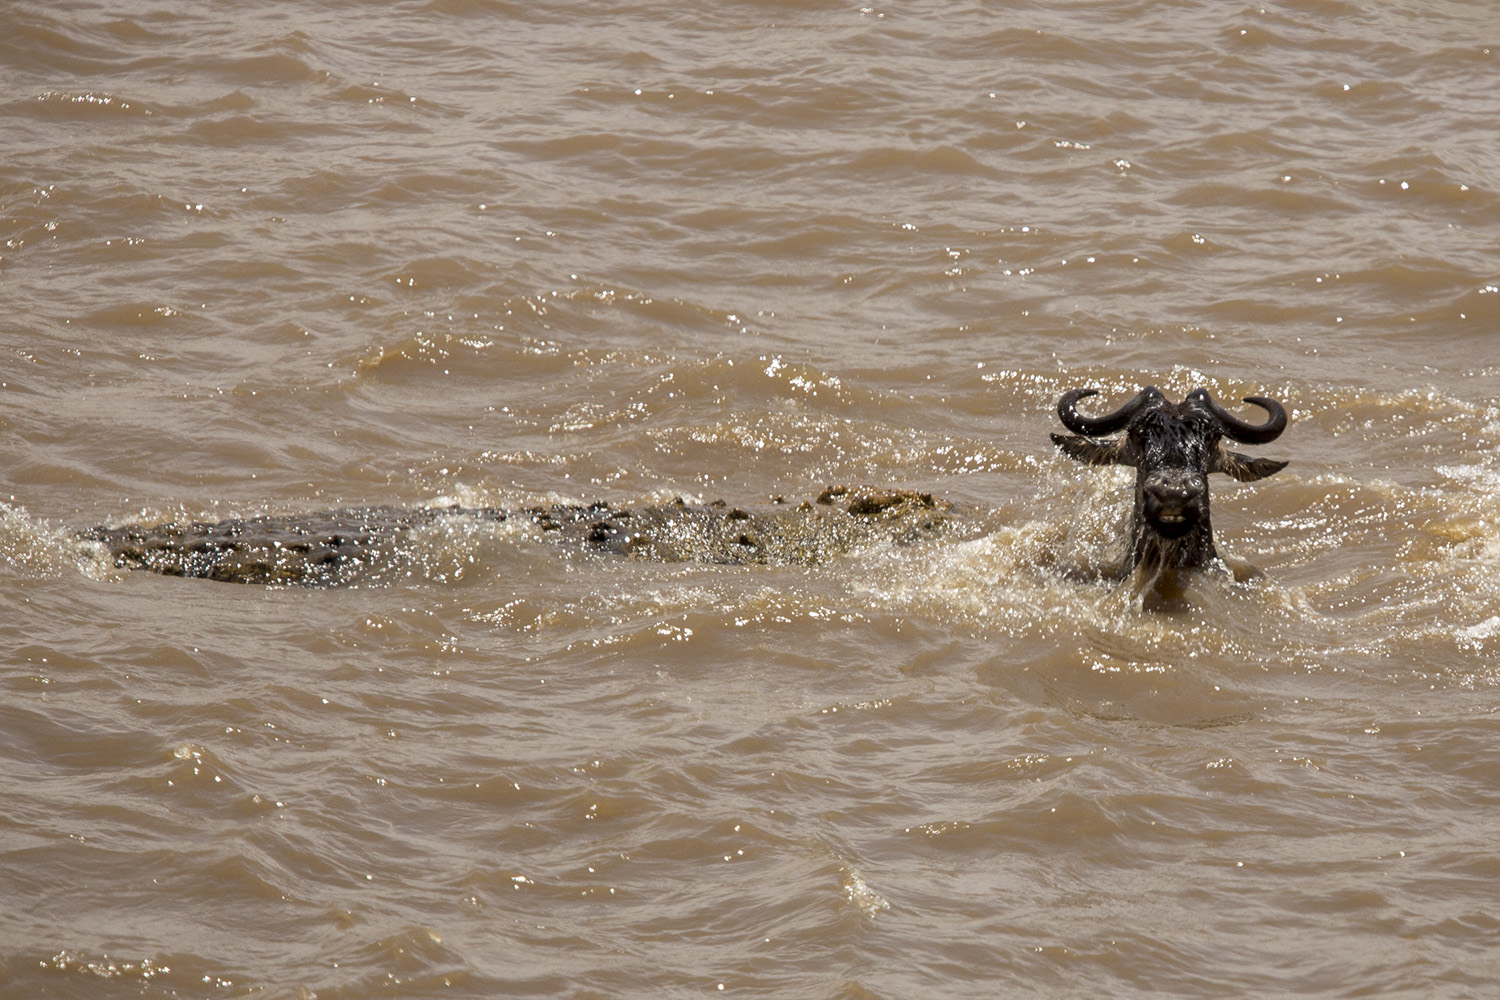 Crossing and croc2